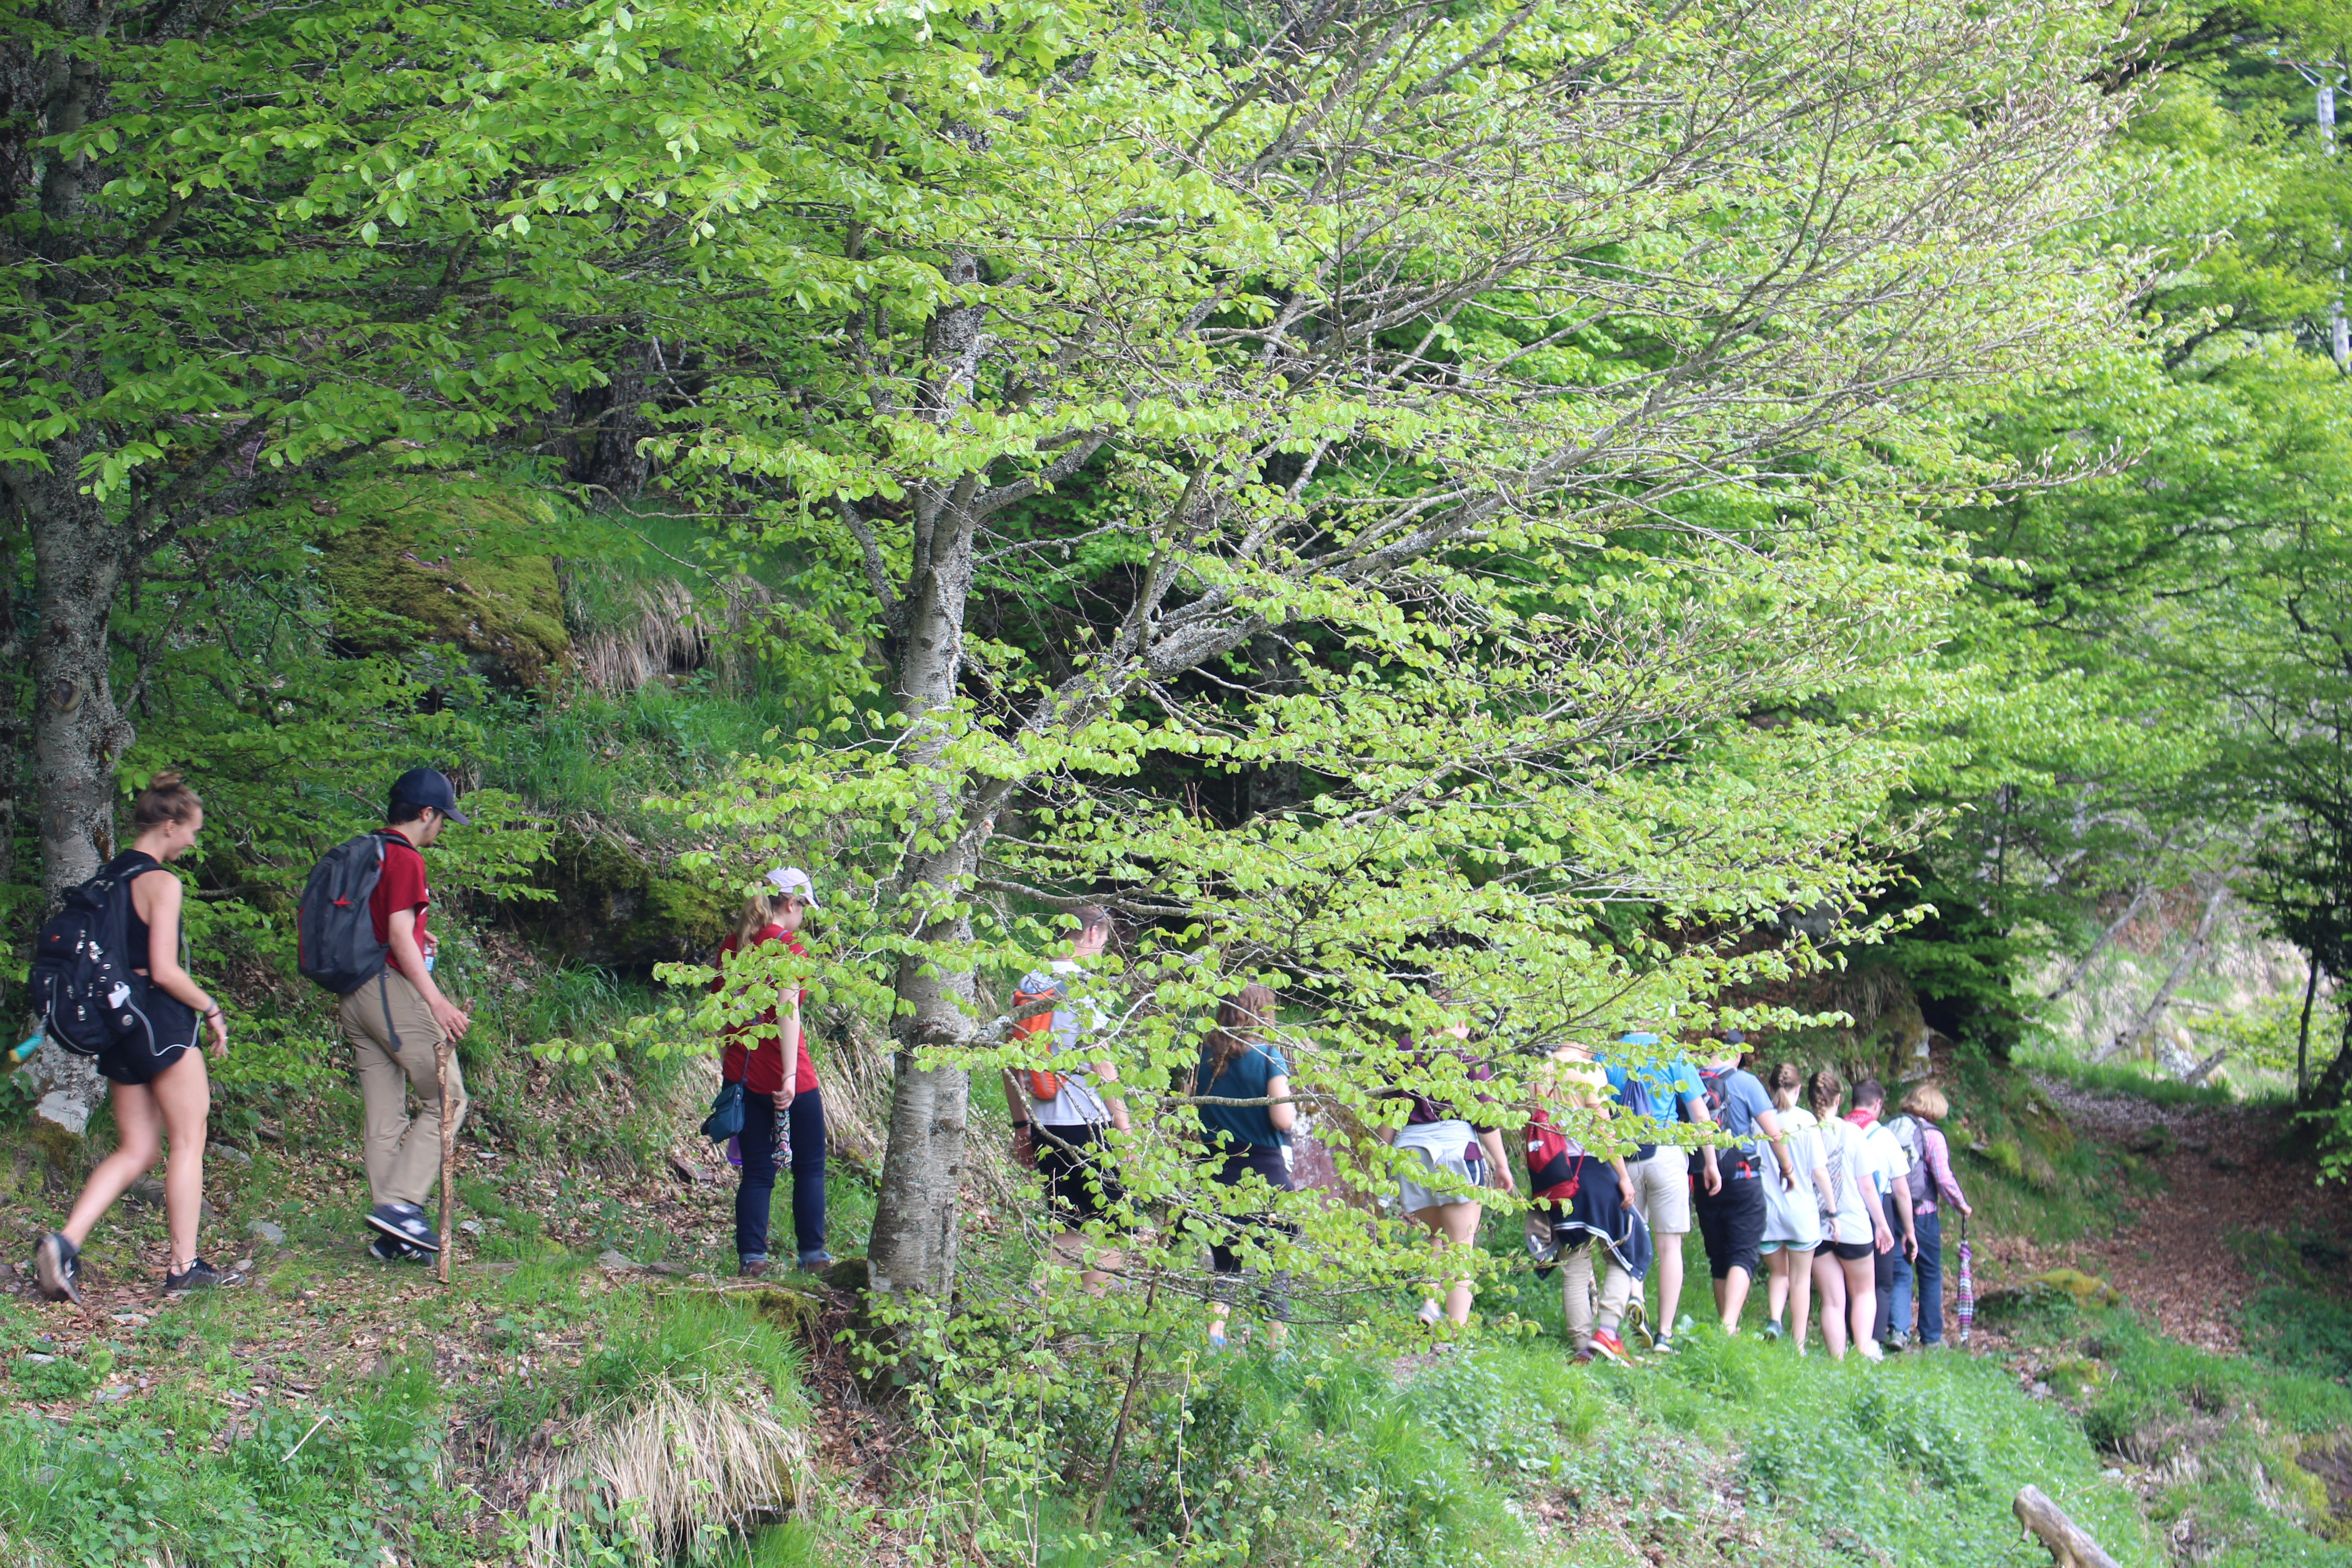 A group of college students are hiking on a wooded mountain.